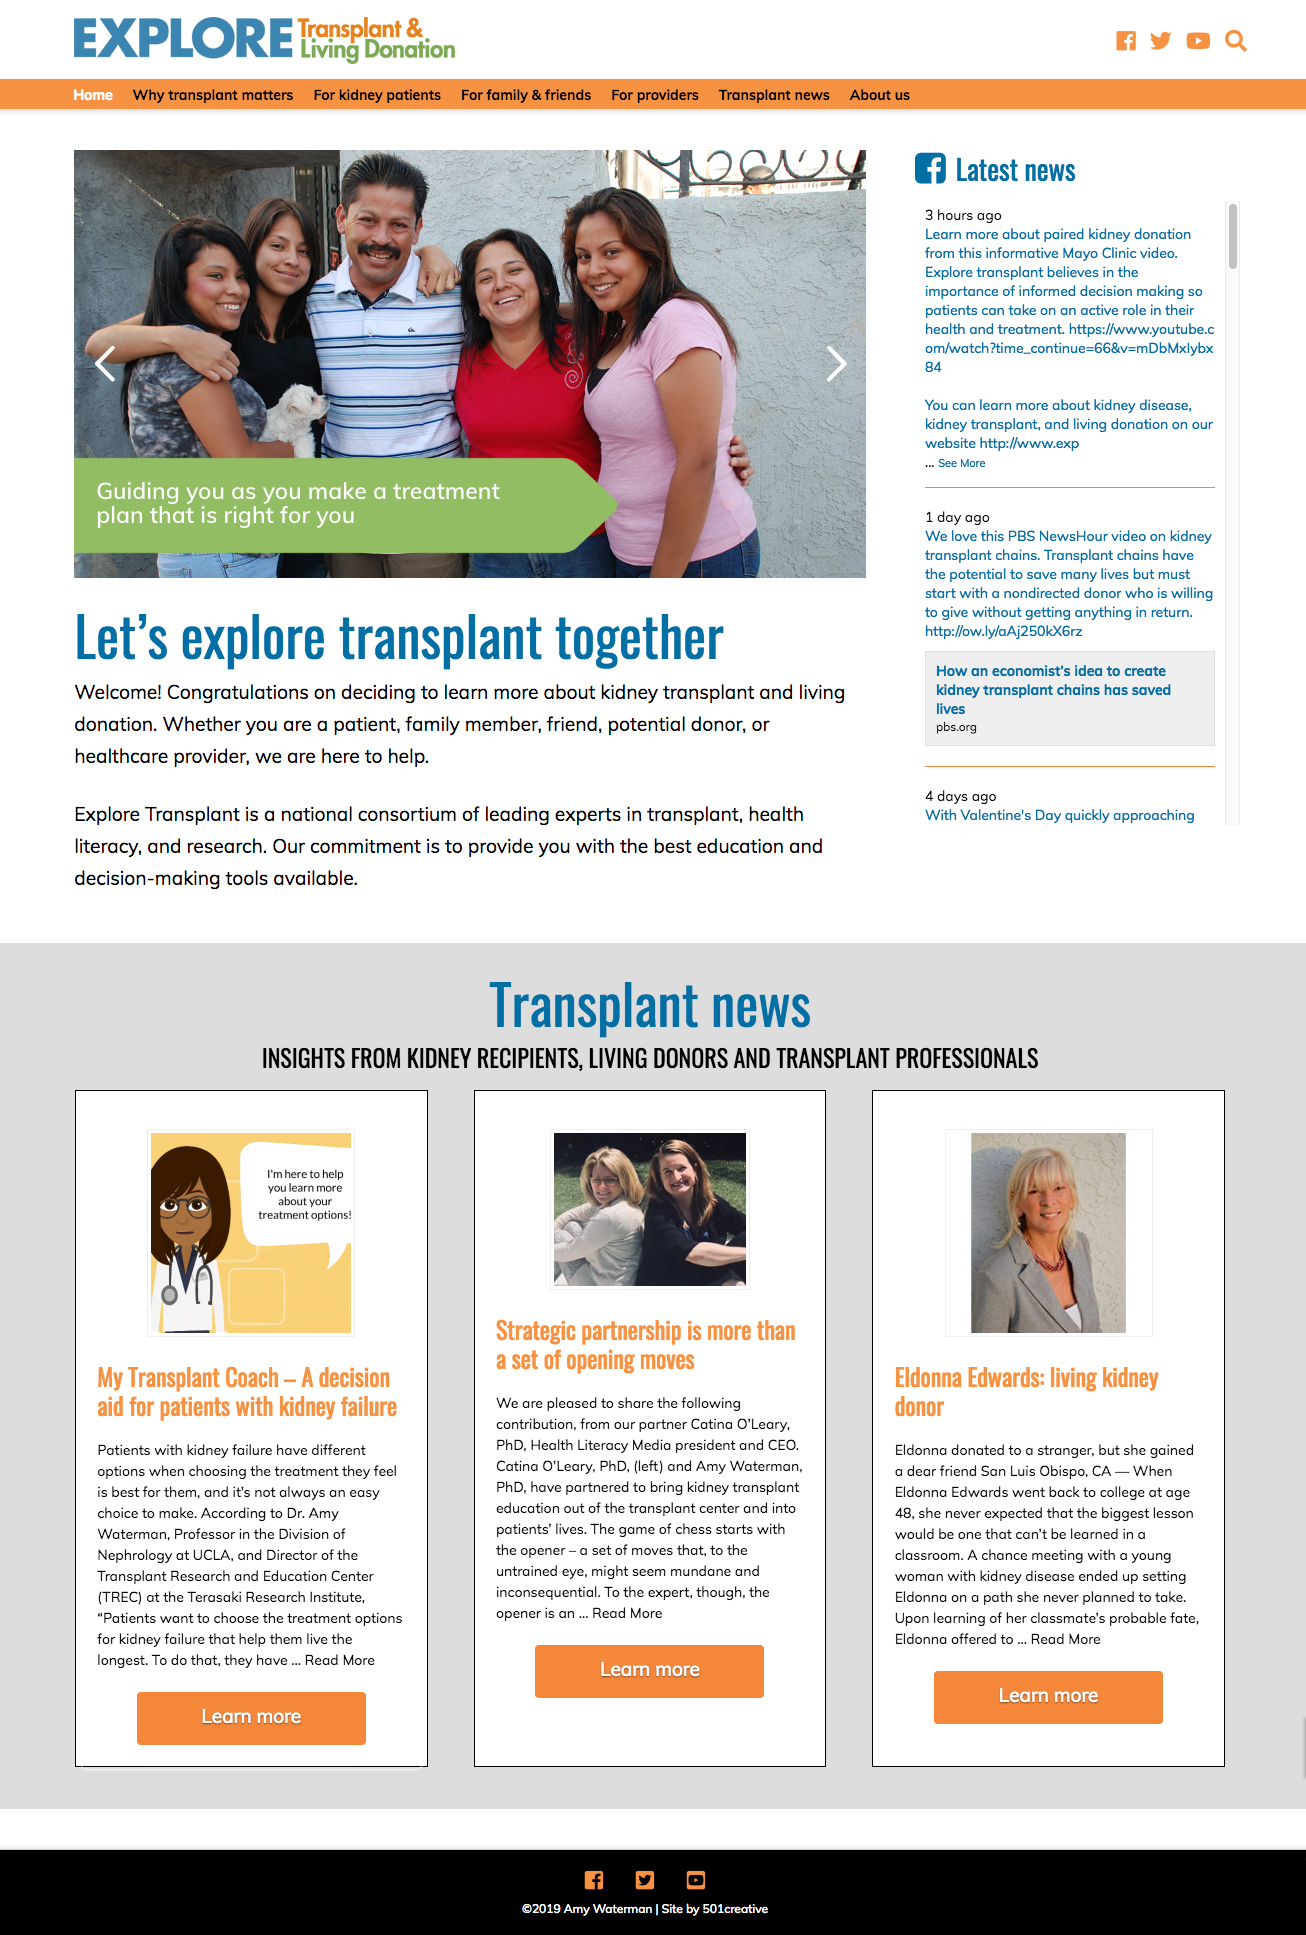 home page of the Explore Transplant website